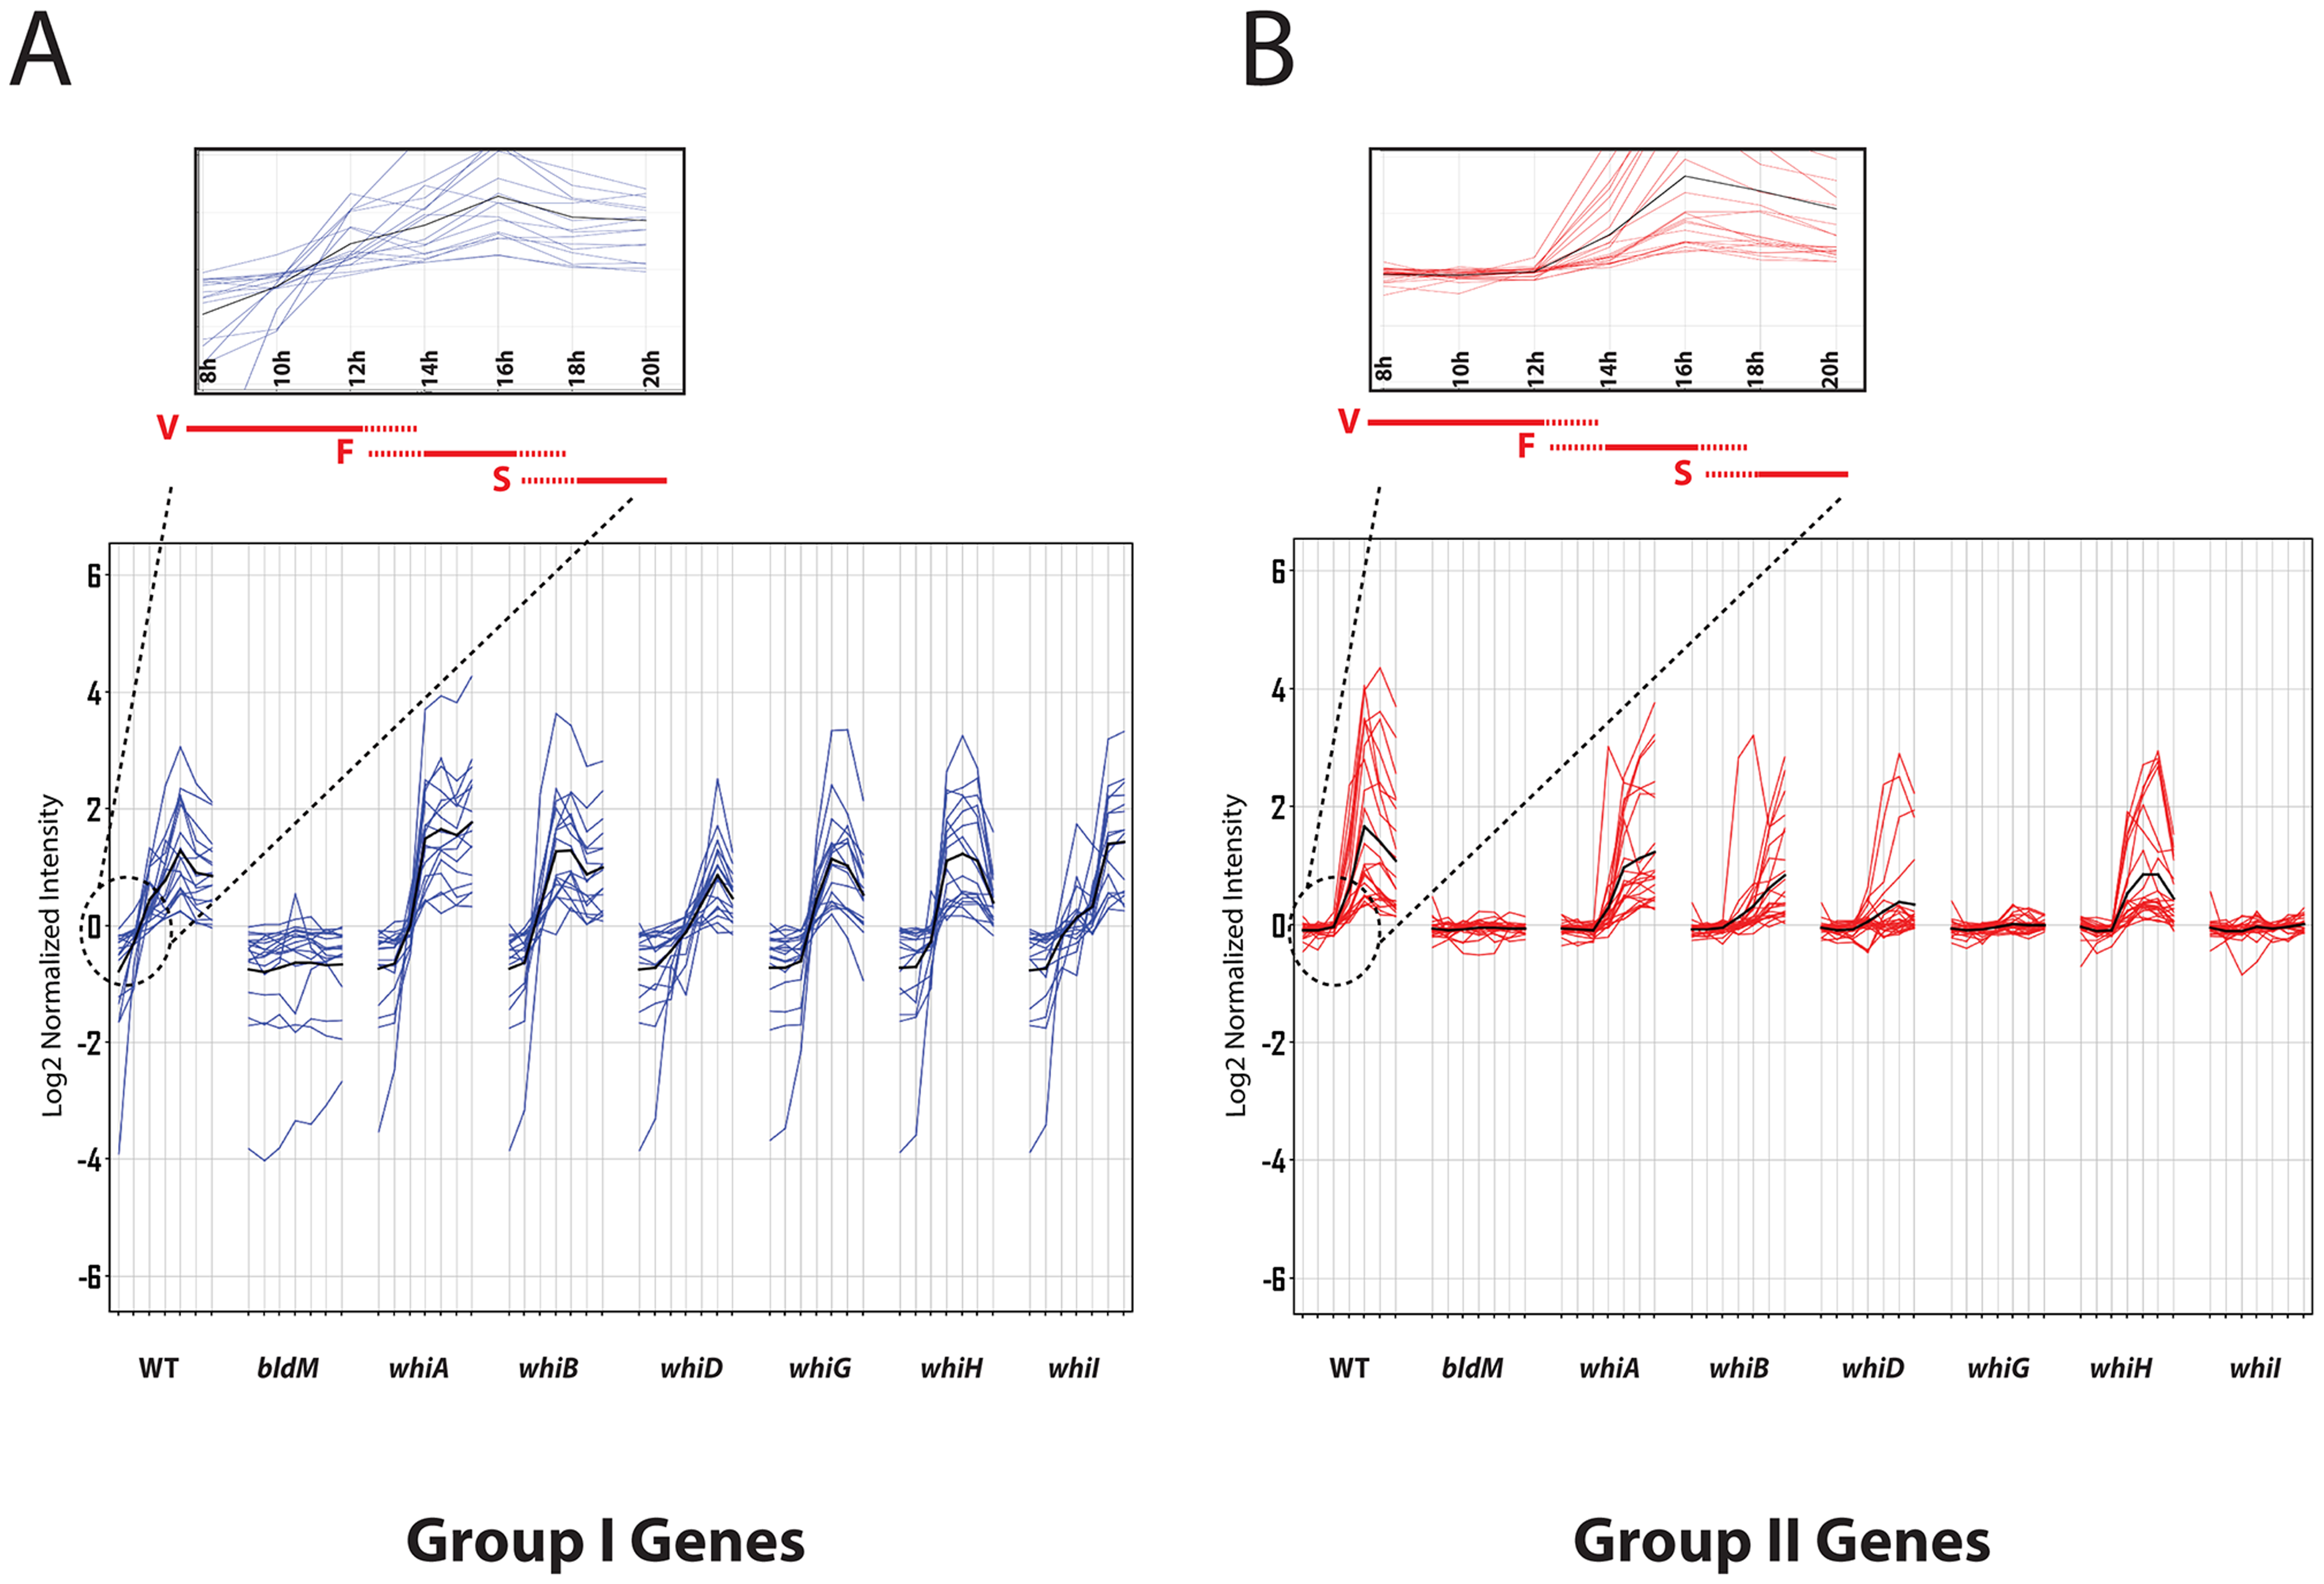 Microarray transcription profiles of (A) Group-I and (B) Group-II genes in wild-type <i>S. venezuelae</i> during submerged sporulation and in congenic <i>ΔbldM</i>, <i>ΔwhiA</i>, <i>ΔwhiB</i>, <i>ΔwhiD</i>, <i>ΔwhiG</i>, <i>ΔwhiH</i> and <i>ΔwhiI</i> null mutants grown under identical conditions.